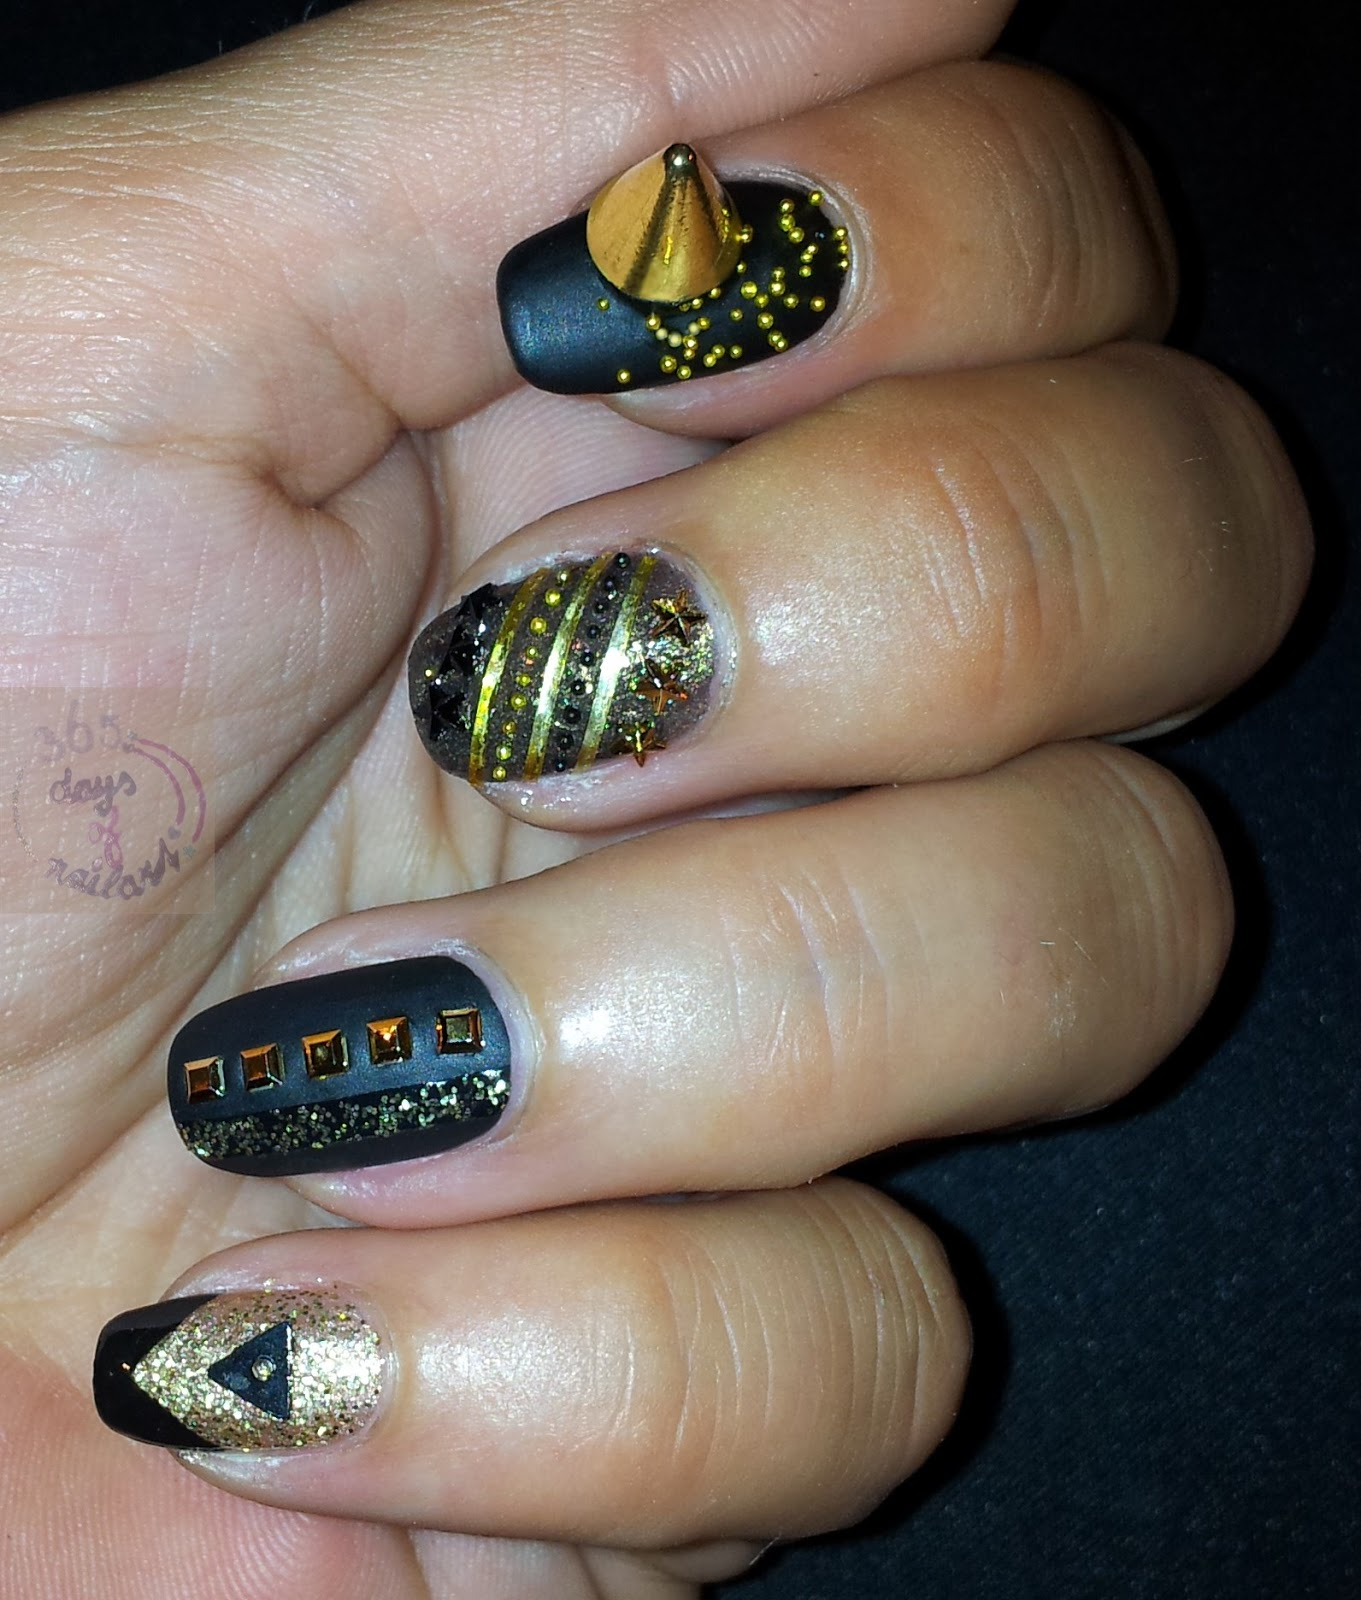 365+ days of nail art: Day 203) Classy rock nails